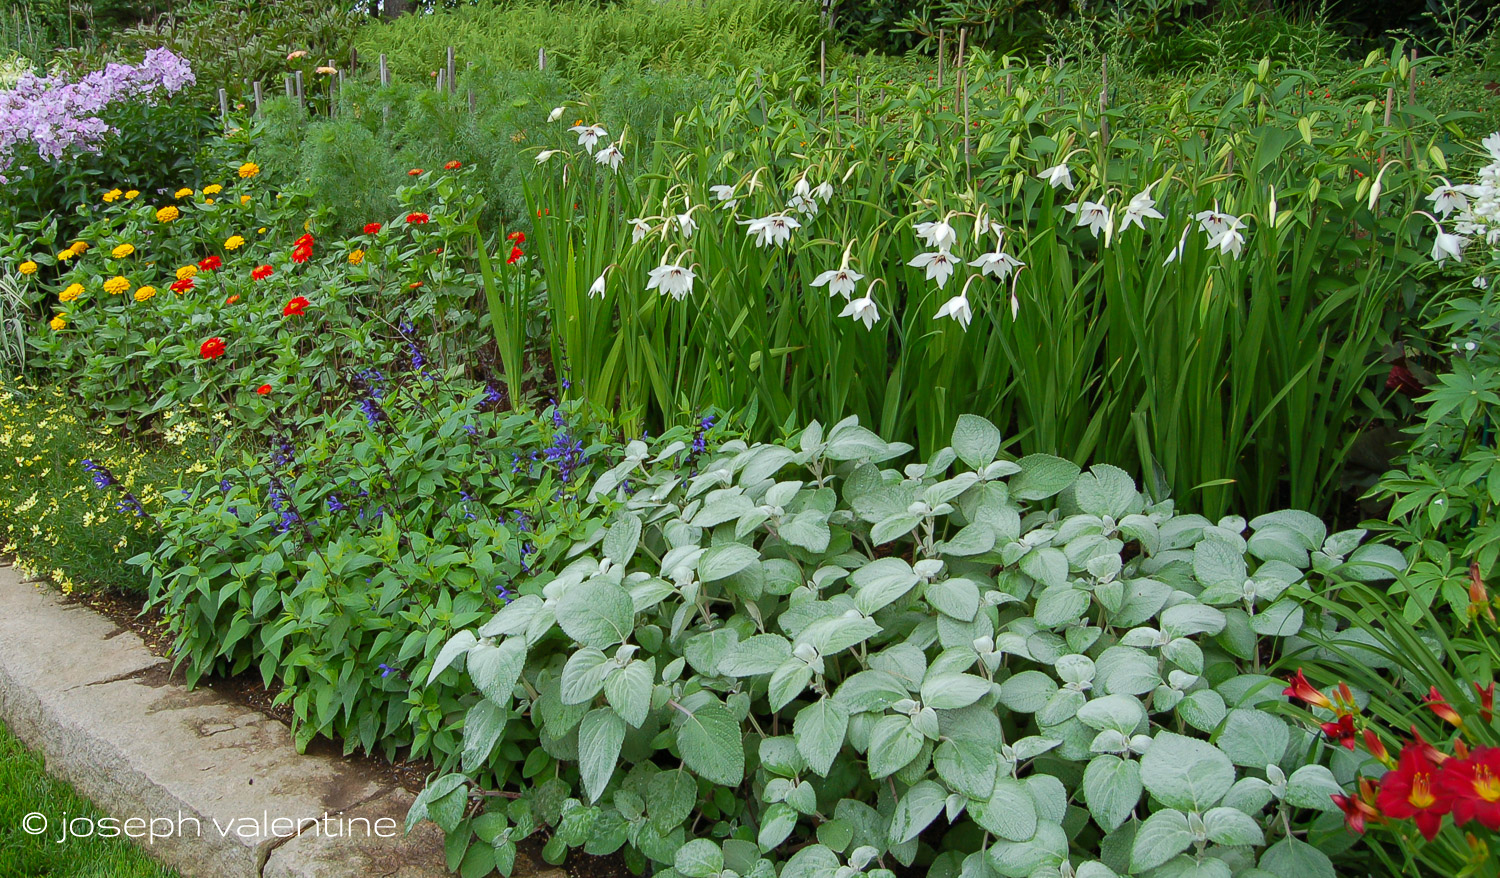 These Acidantheras, with their bright white, nodding flowers fit beautifully into theborder of thisMaine garden.